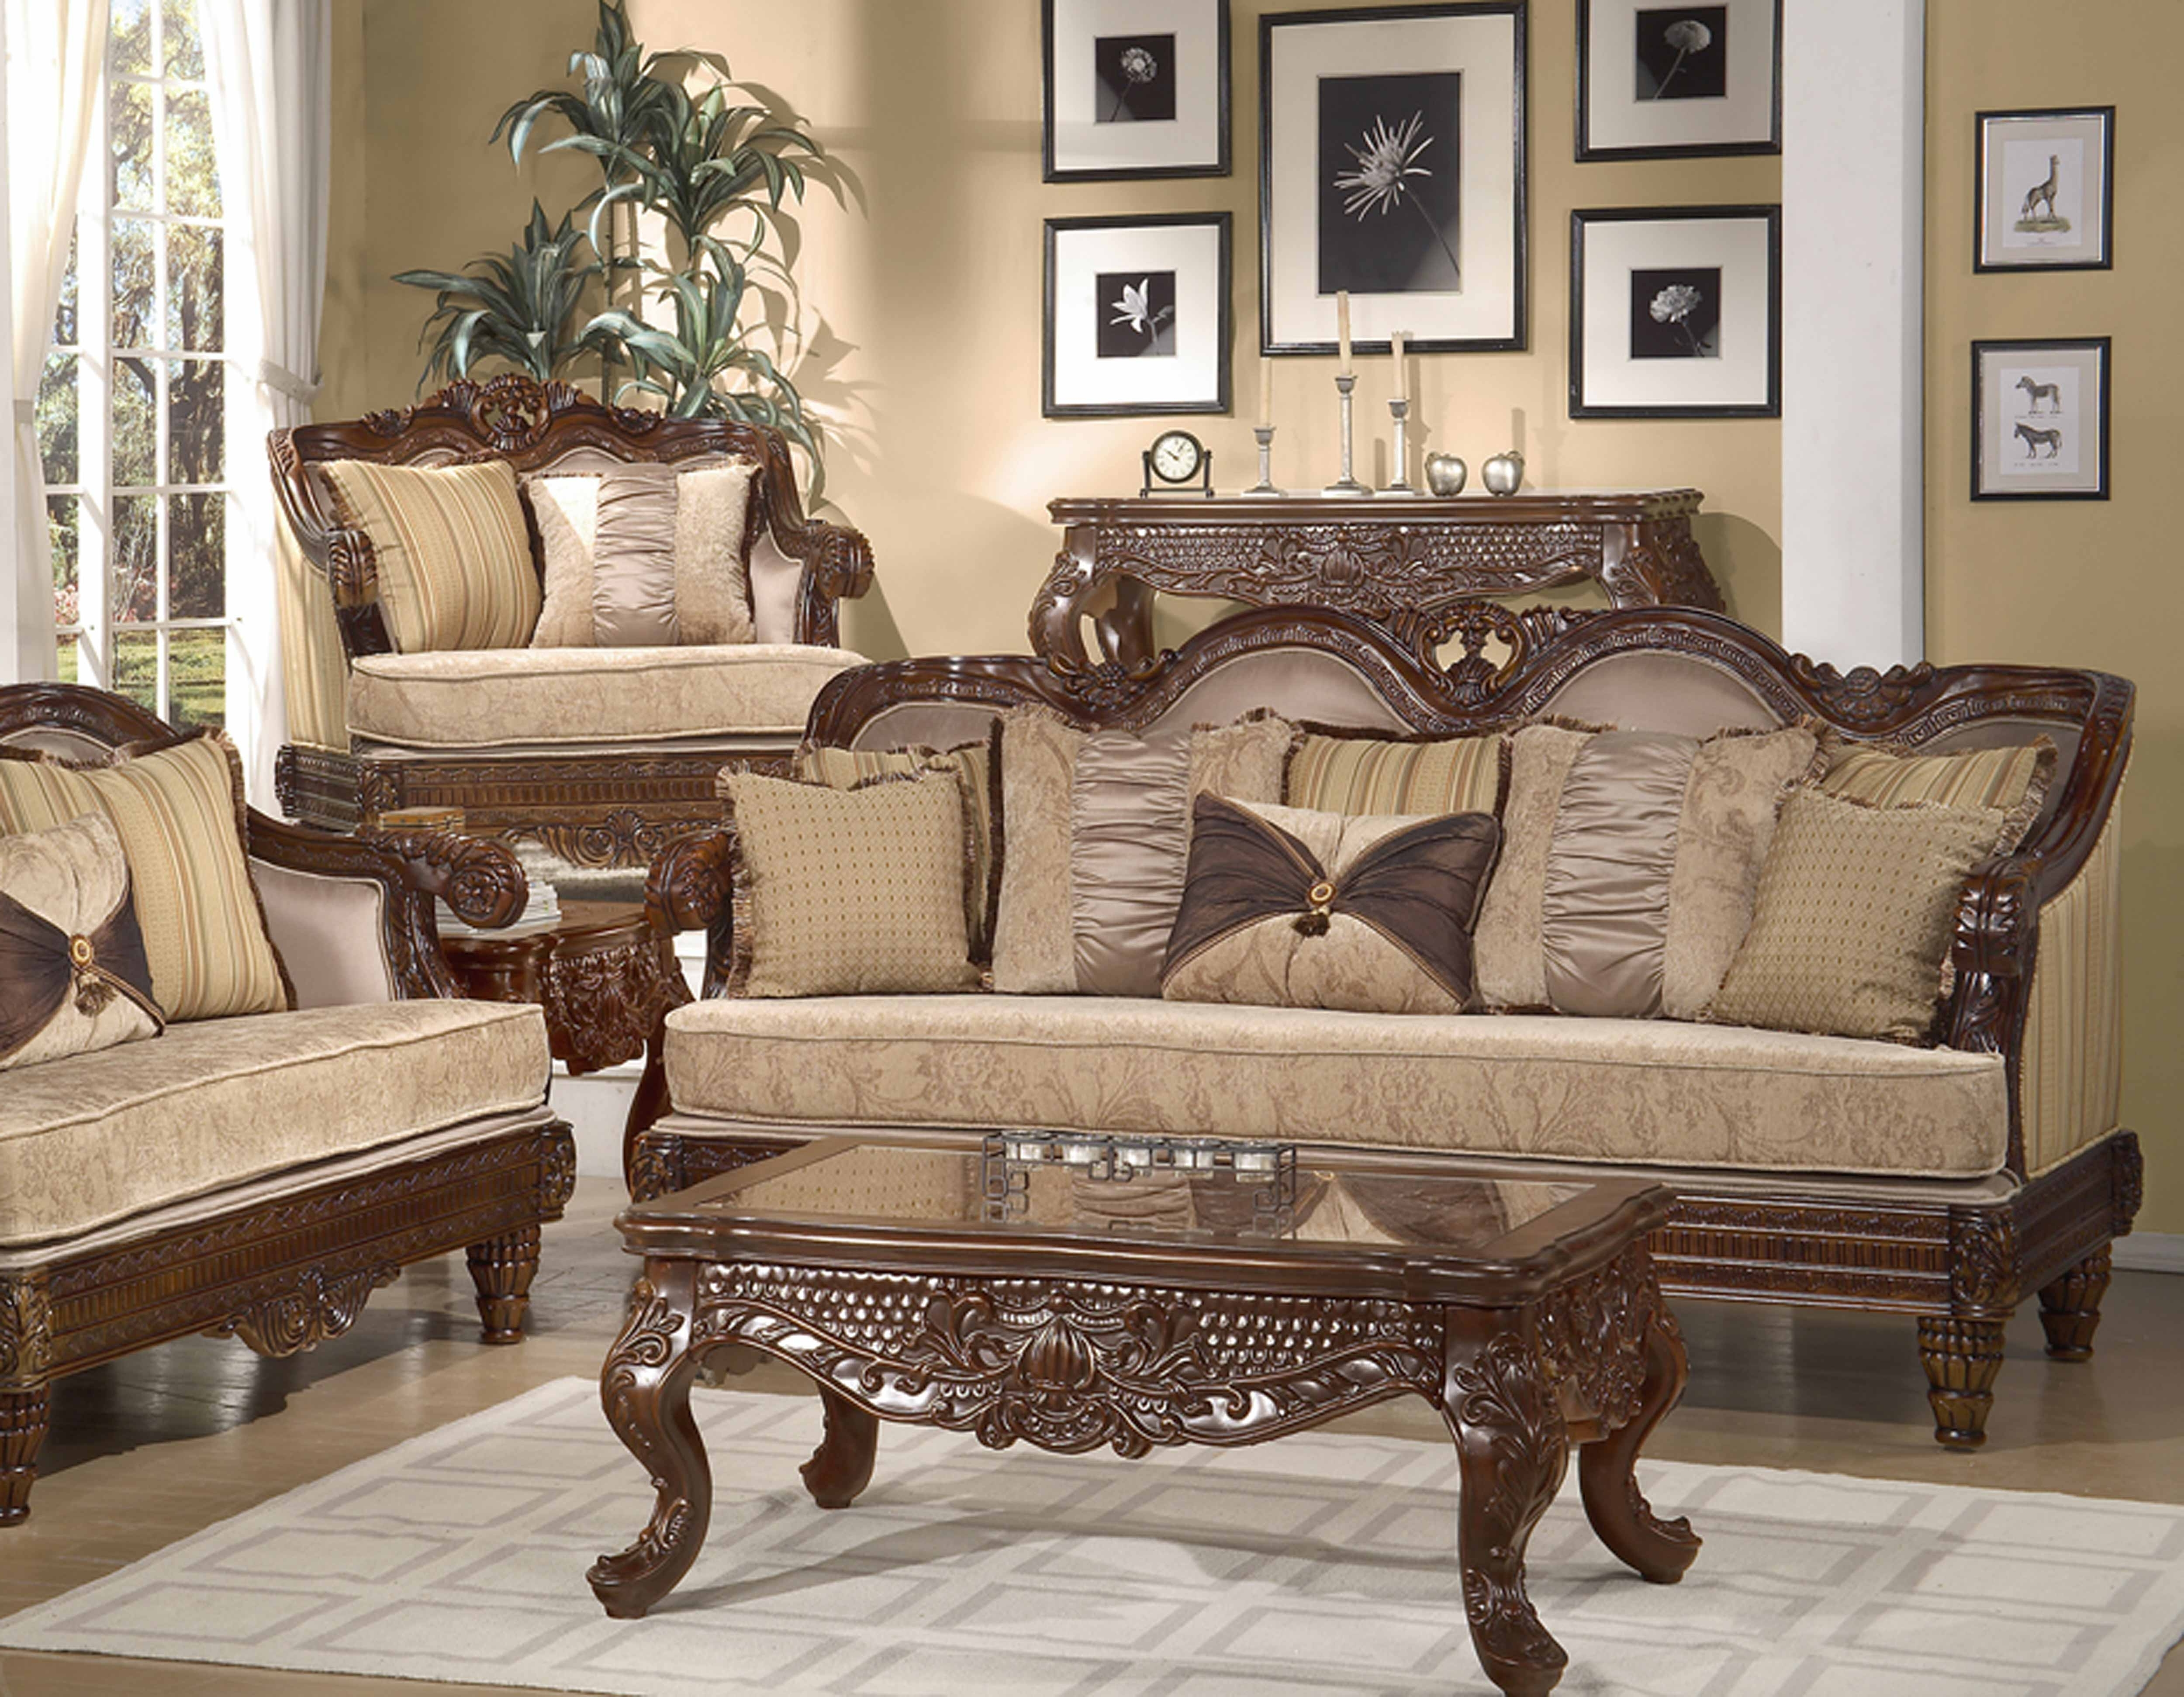 Uncategorized : Elegant Sofas With Stunning Formal Traditional Pertaining To Fashionable Traditional Sofas (Gallery 11 of 20)